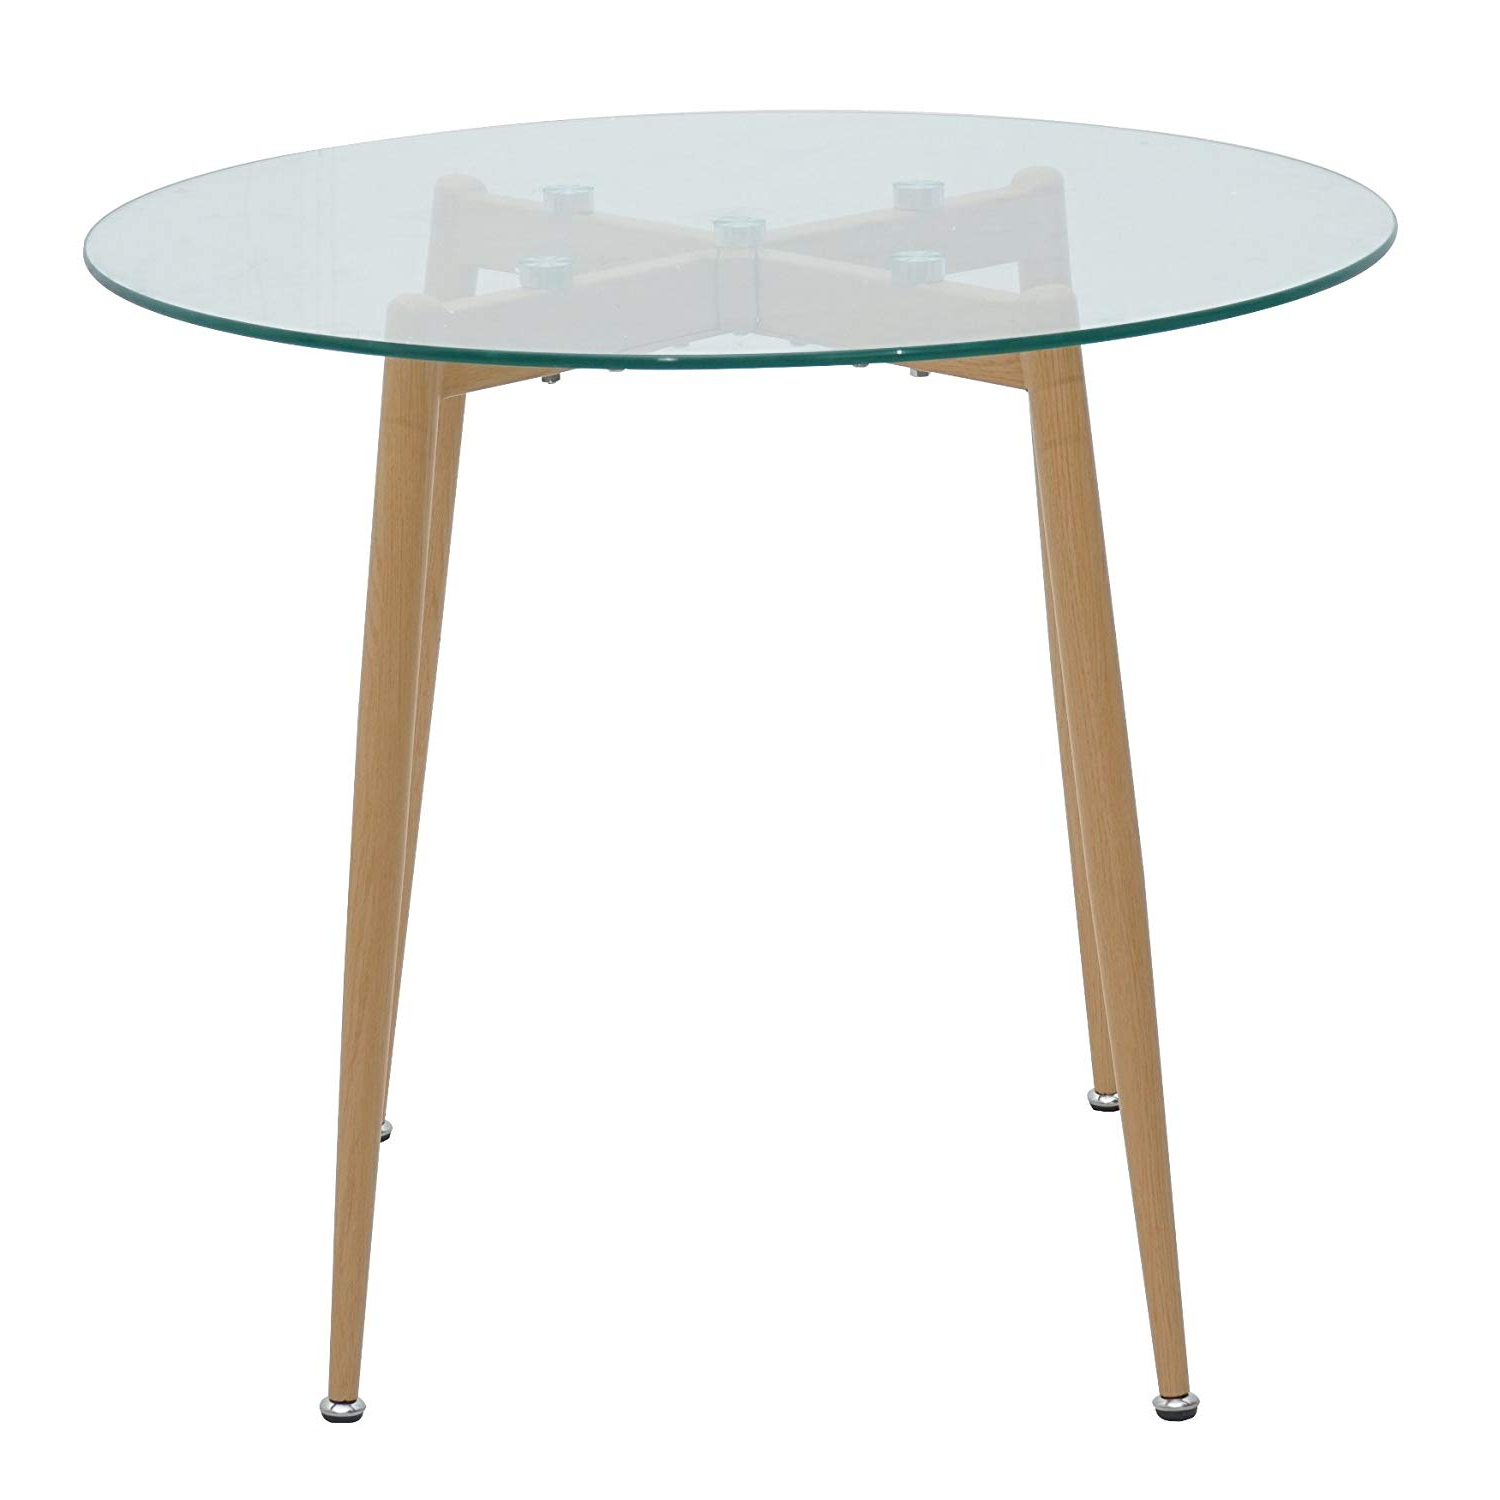 Retro Round Glasstop Dining Tables With Latest Green Spirit 90 X 75 Cm Wood Dining Table Glass Top Round (View 6 of 30)